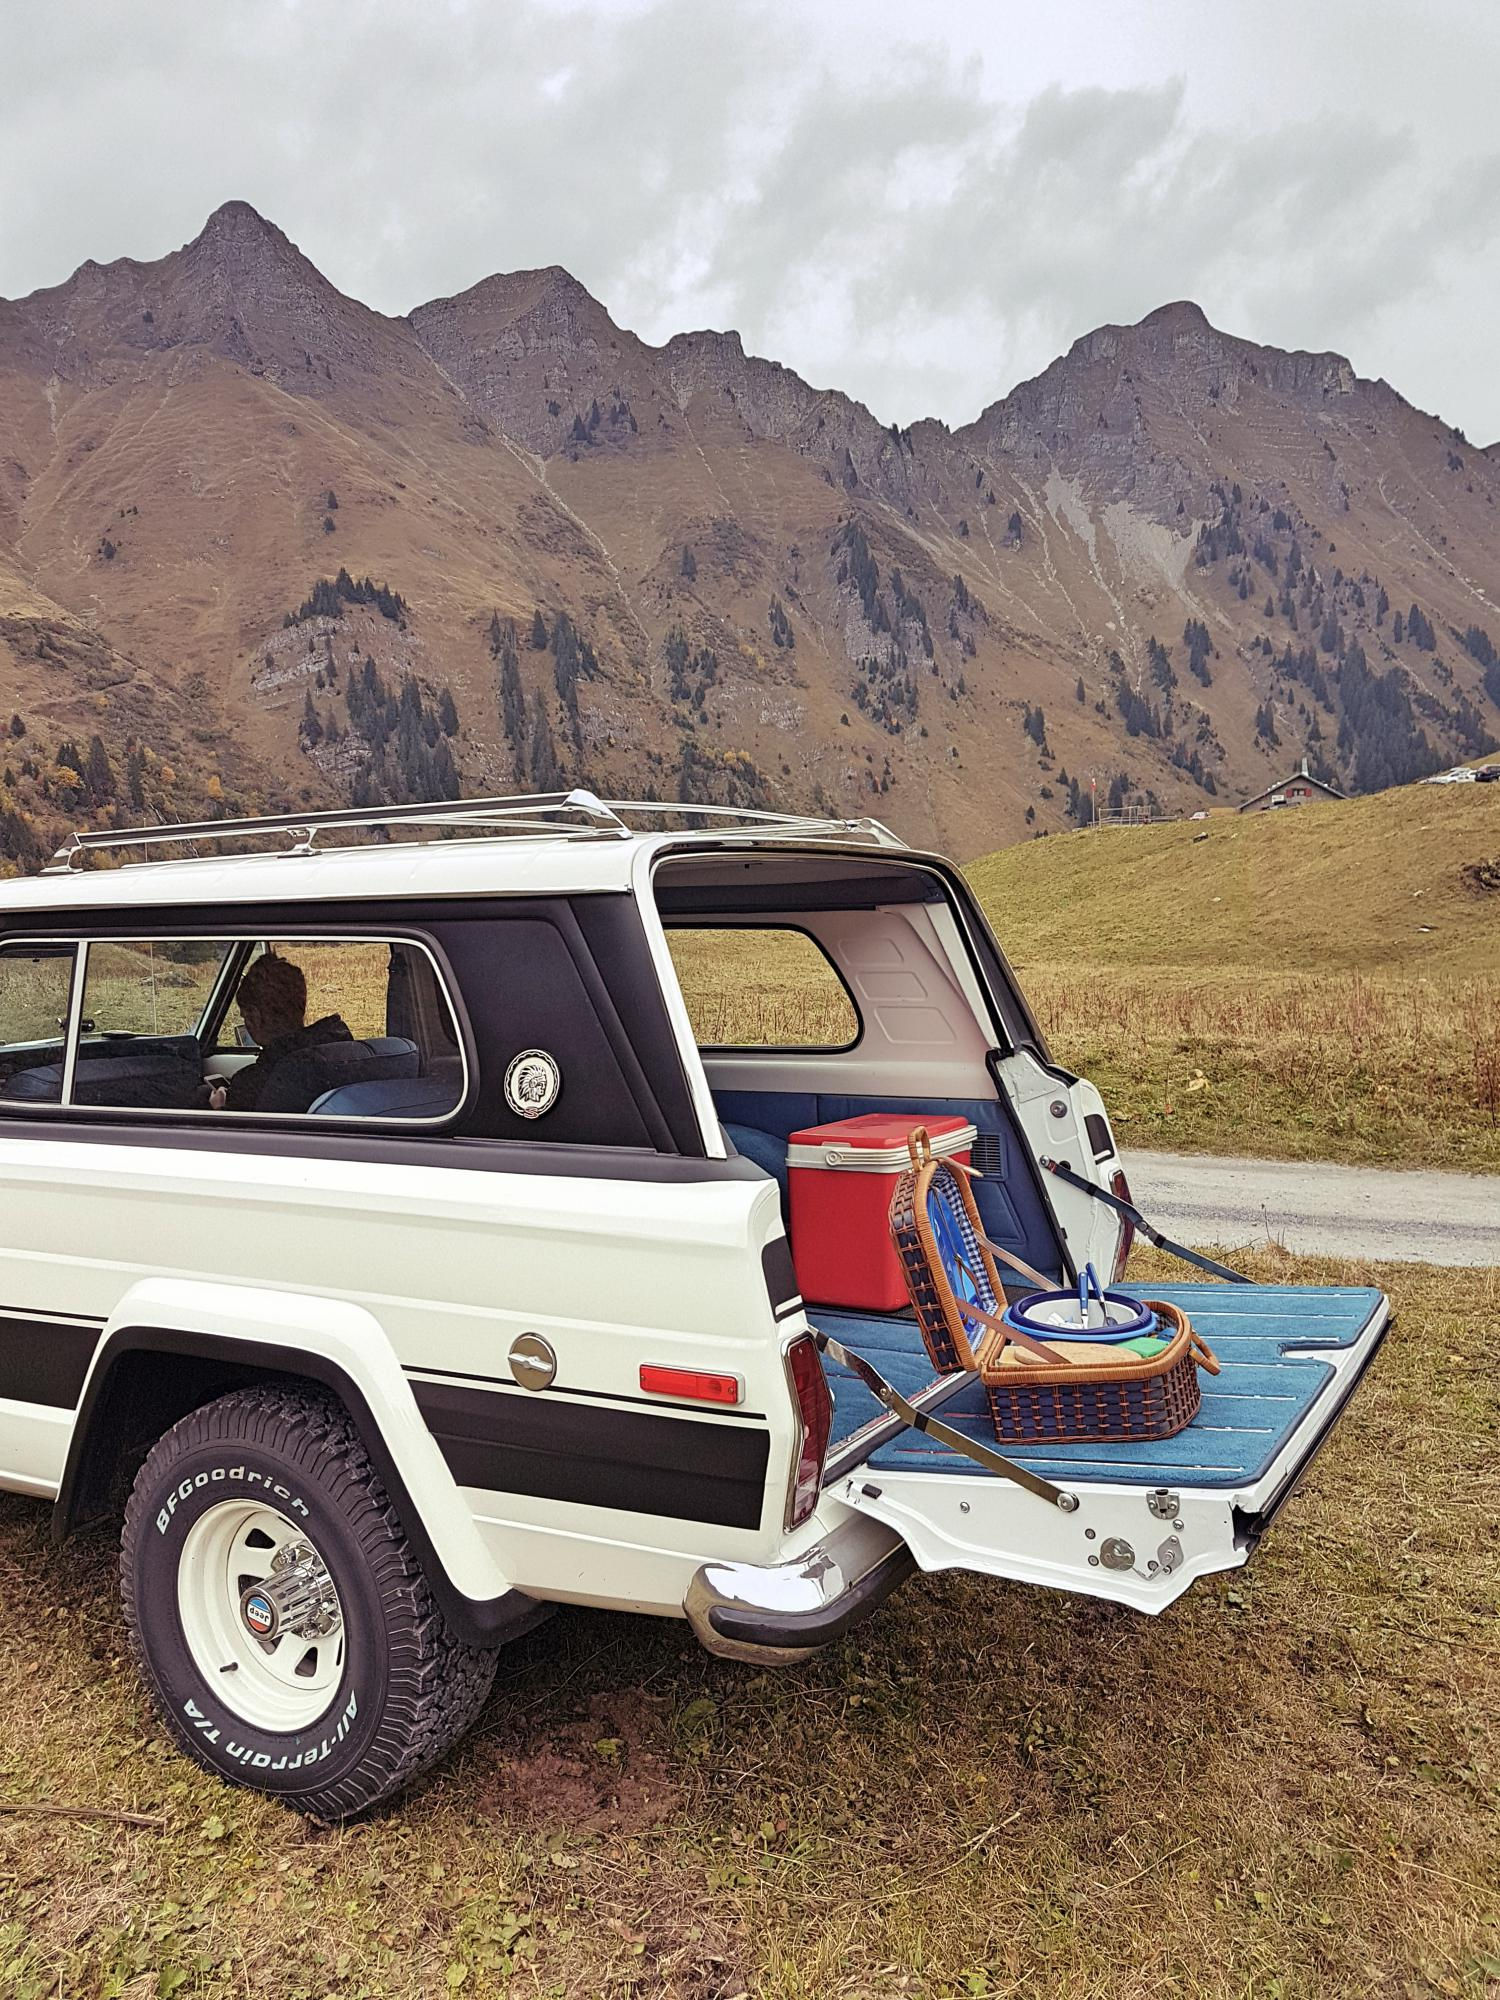 jeep-cherokee-chief-1978-shooting-morgins-switzerland-65.jpg